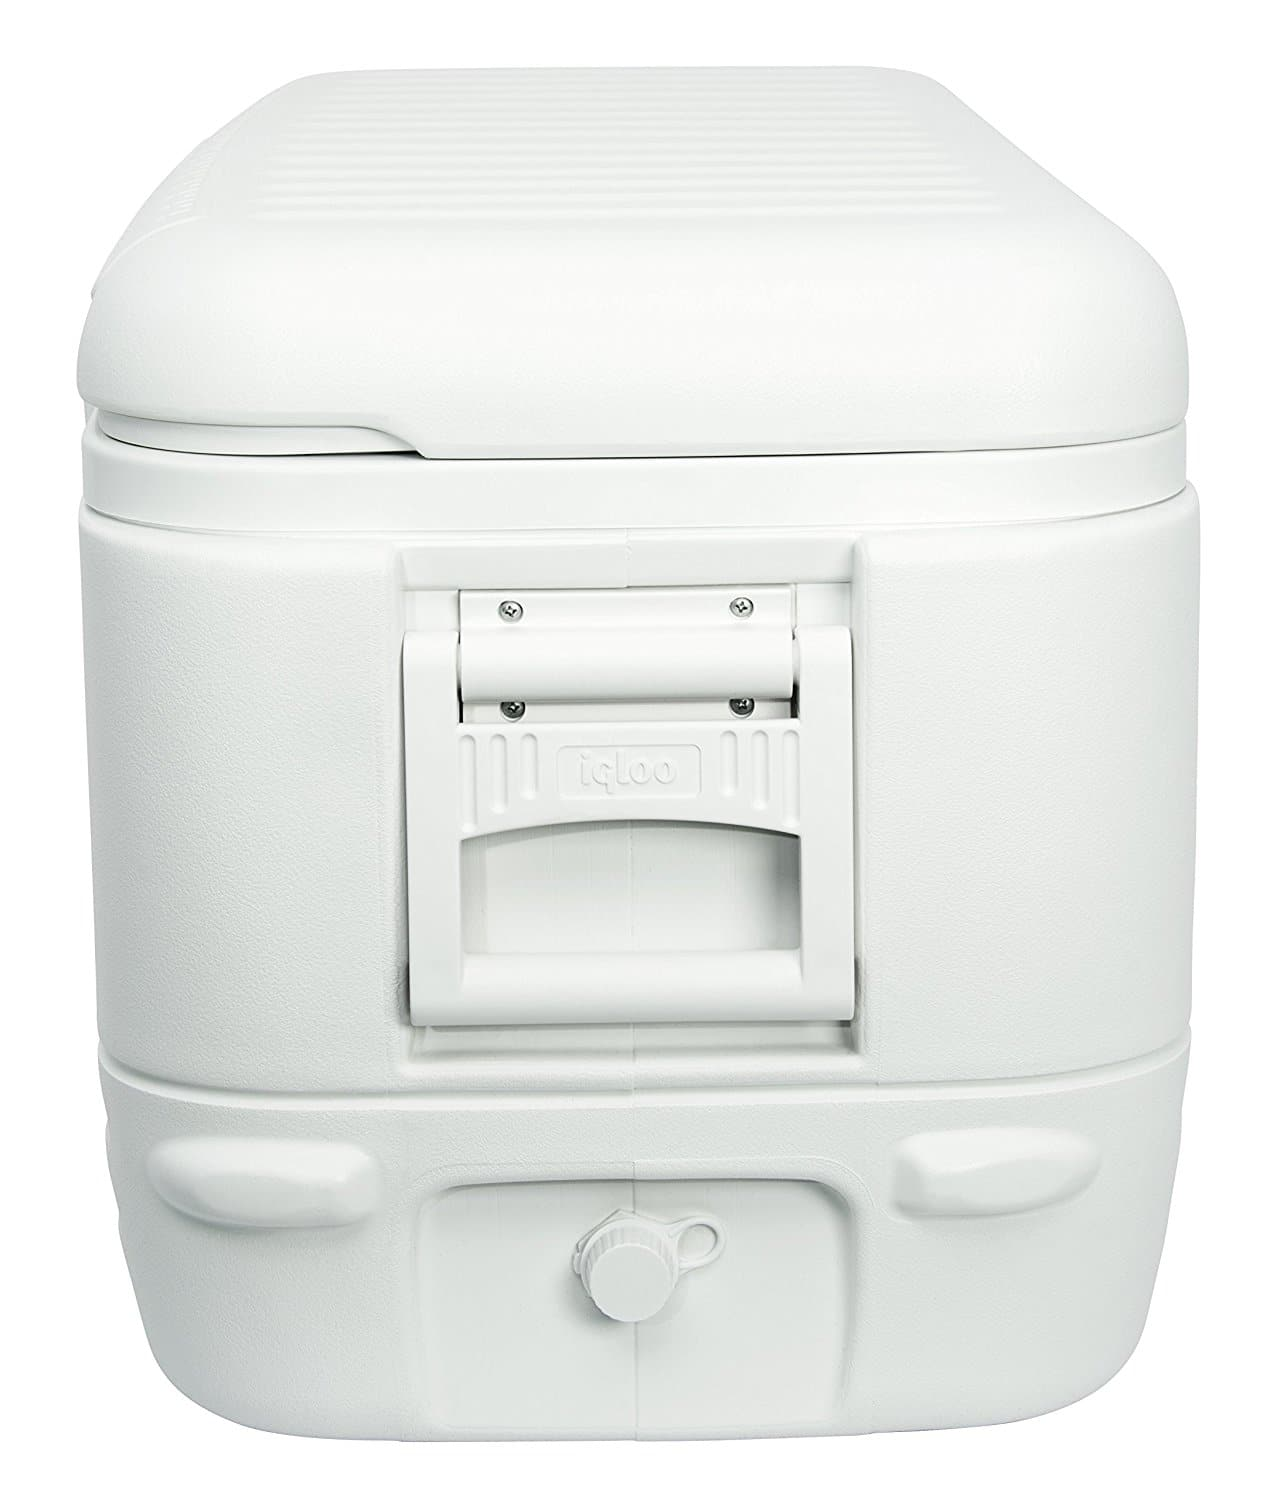 igloo polar cooler side view